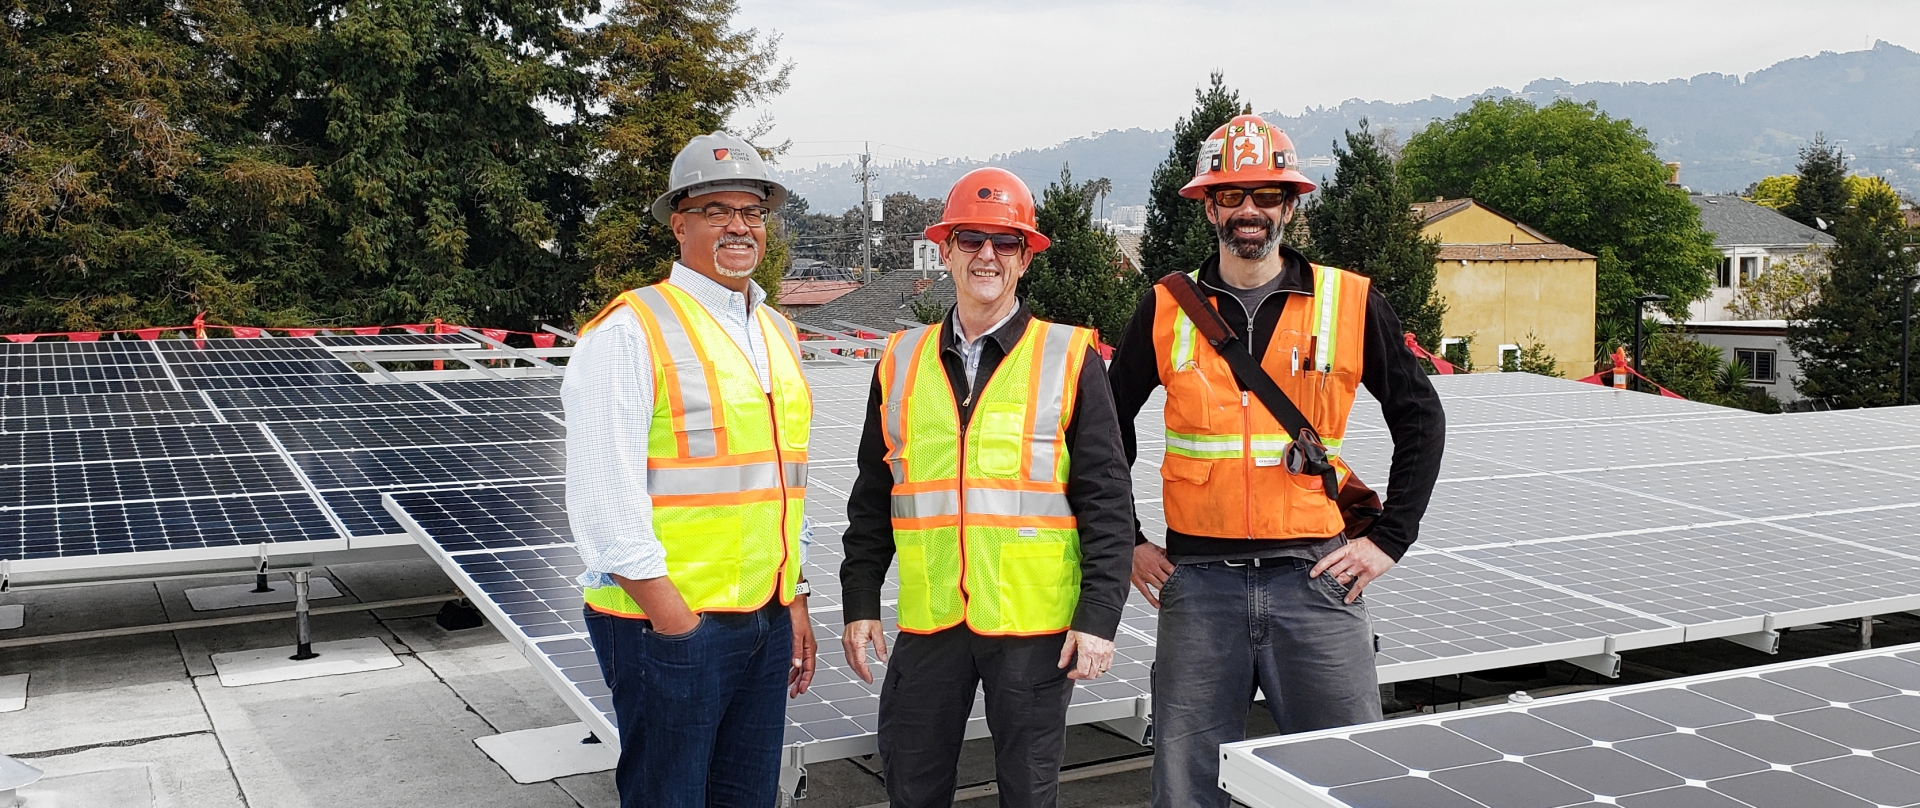 Harry, Gary and Blake standing in front of a Solar PV installation